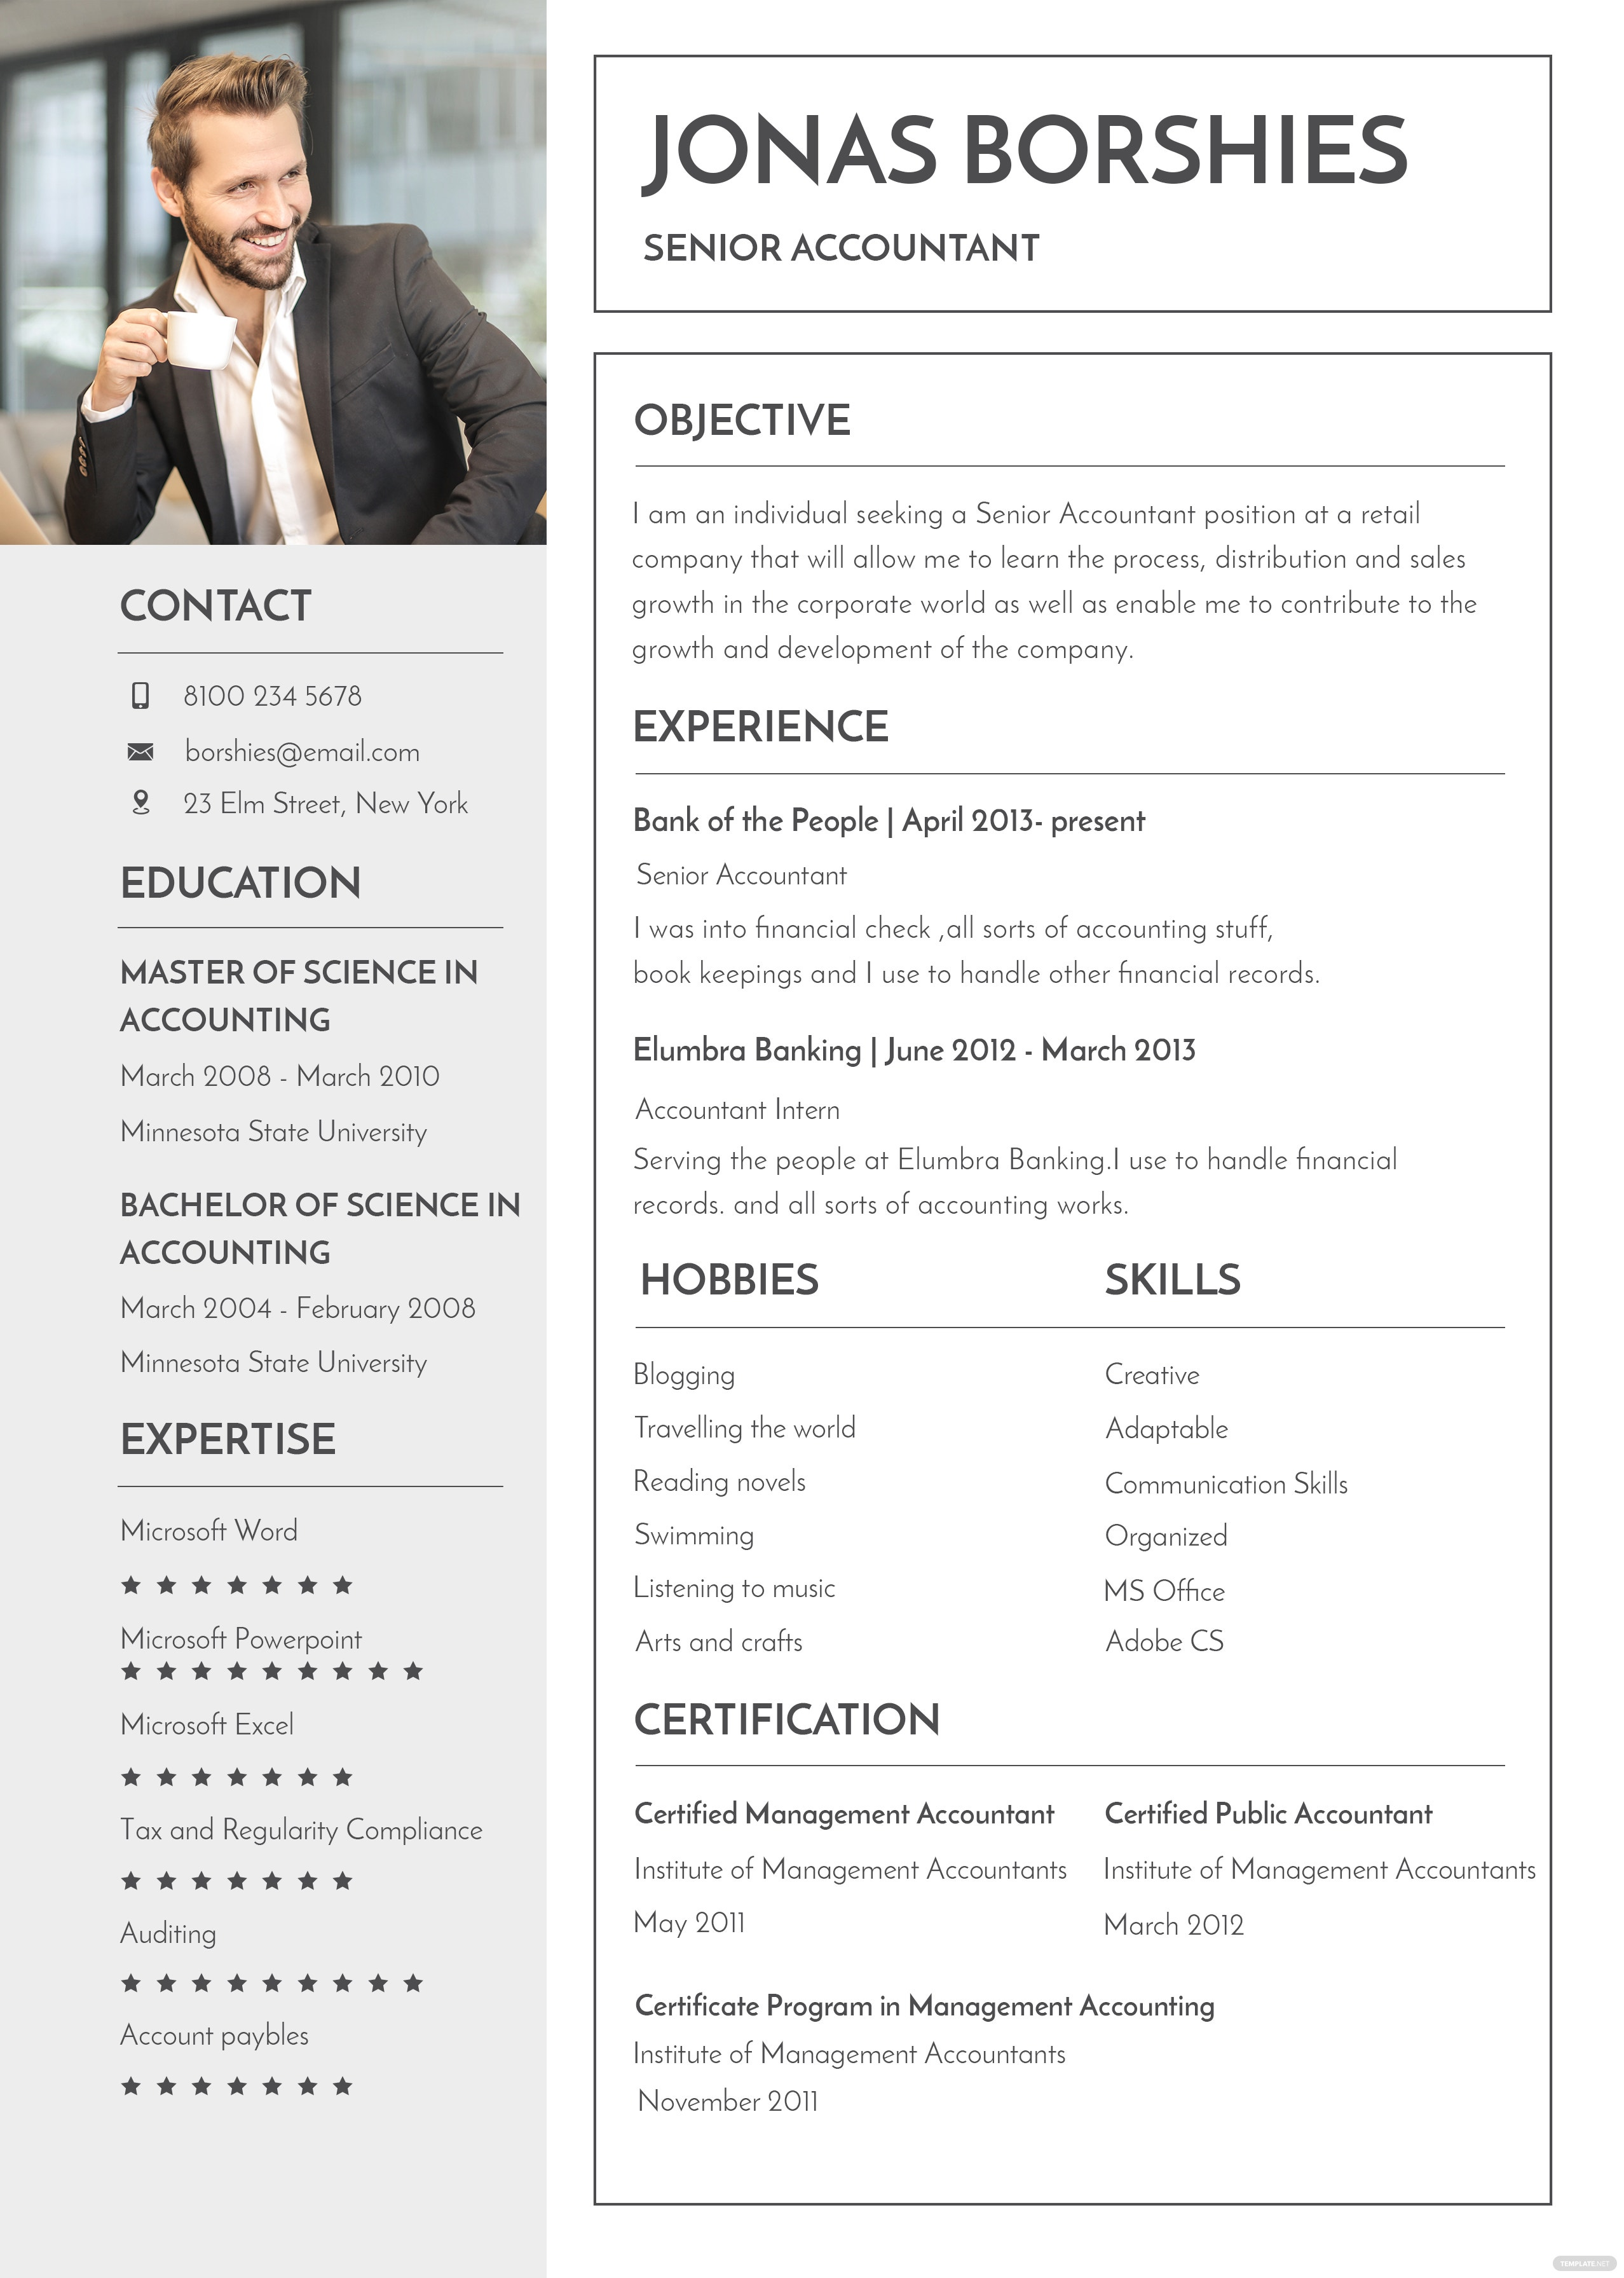 free professional banking resume and cv template in psd  ms word  publisher  illustrator